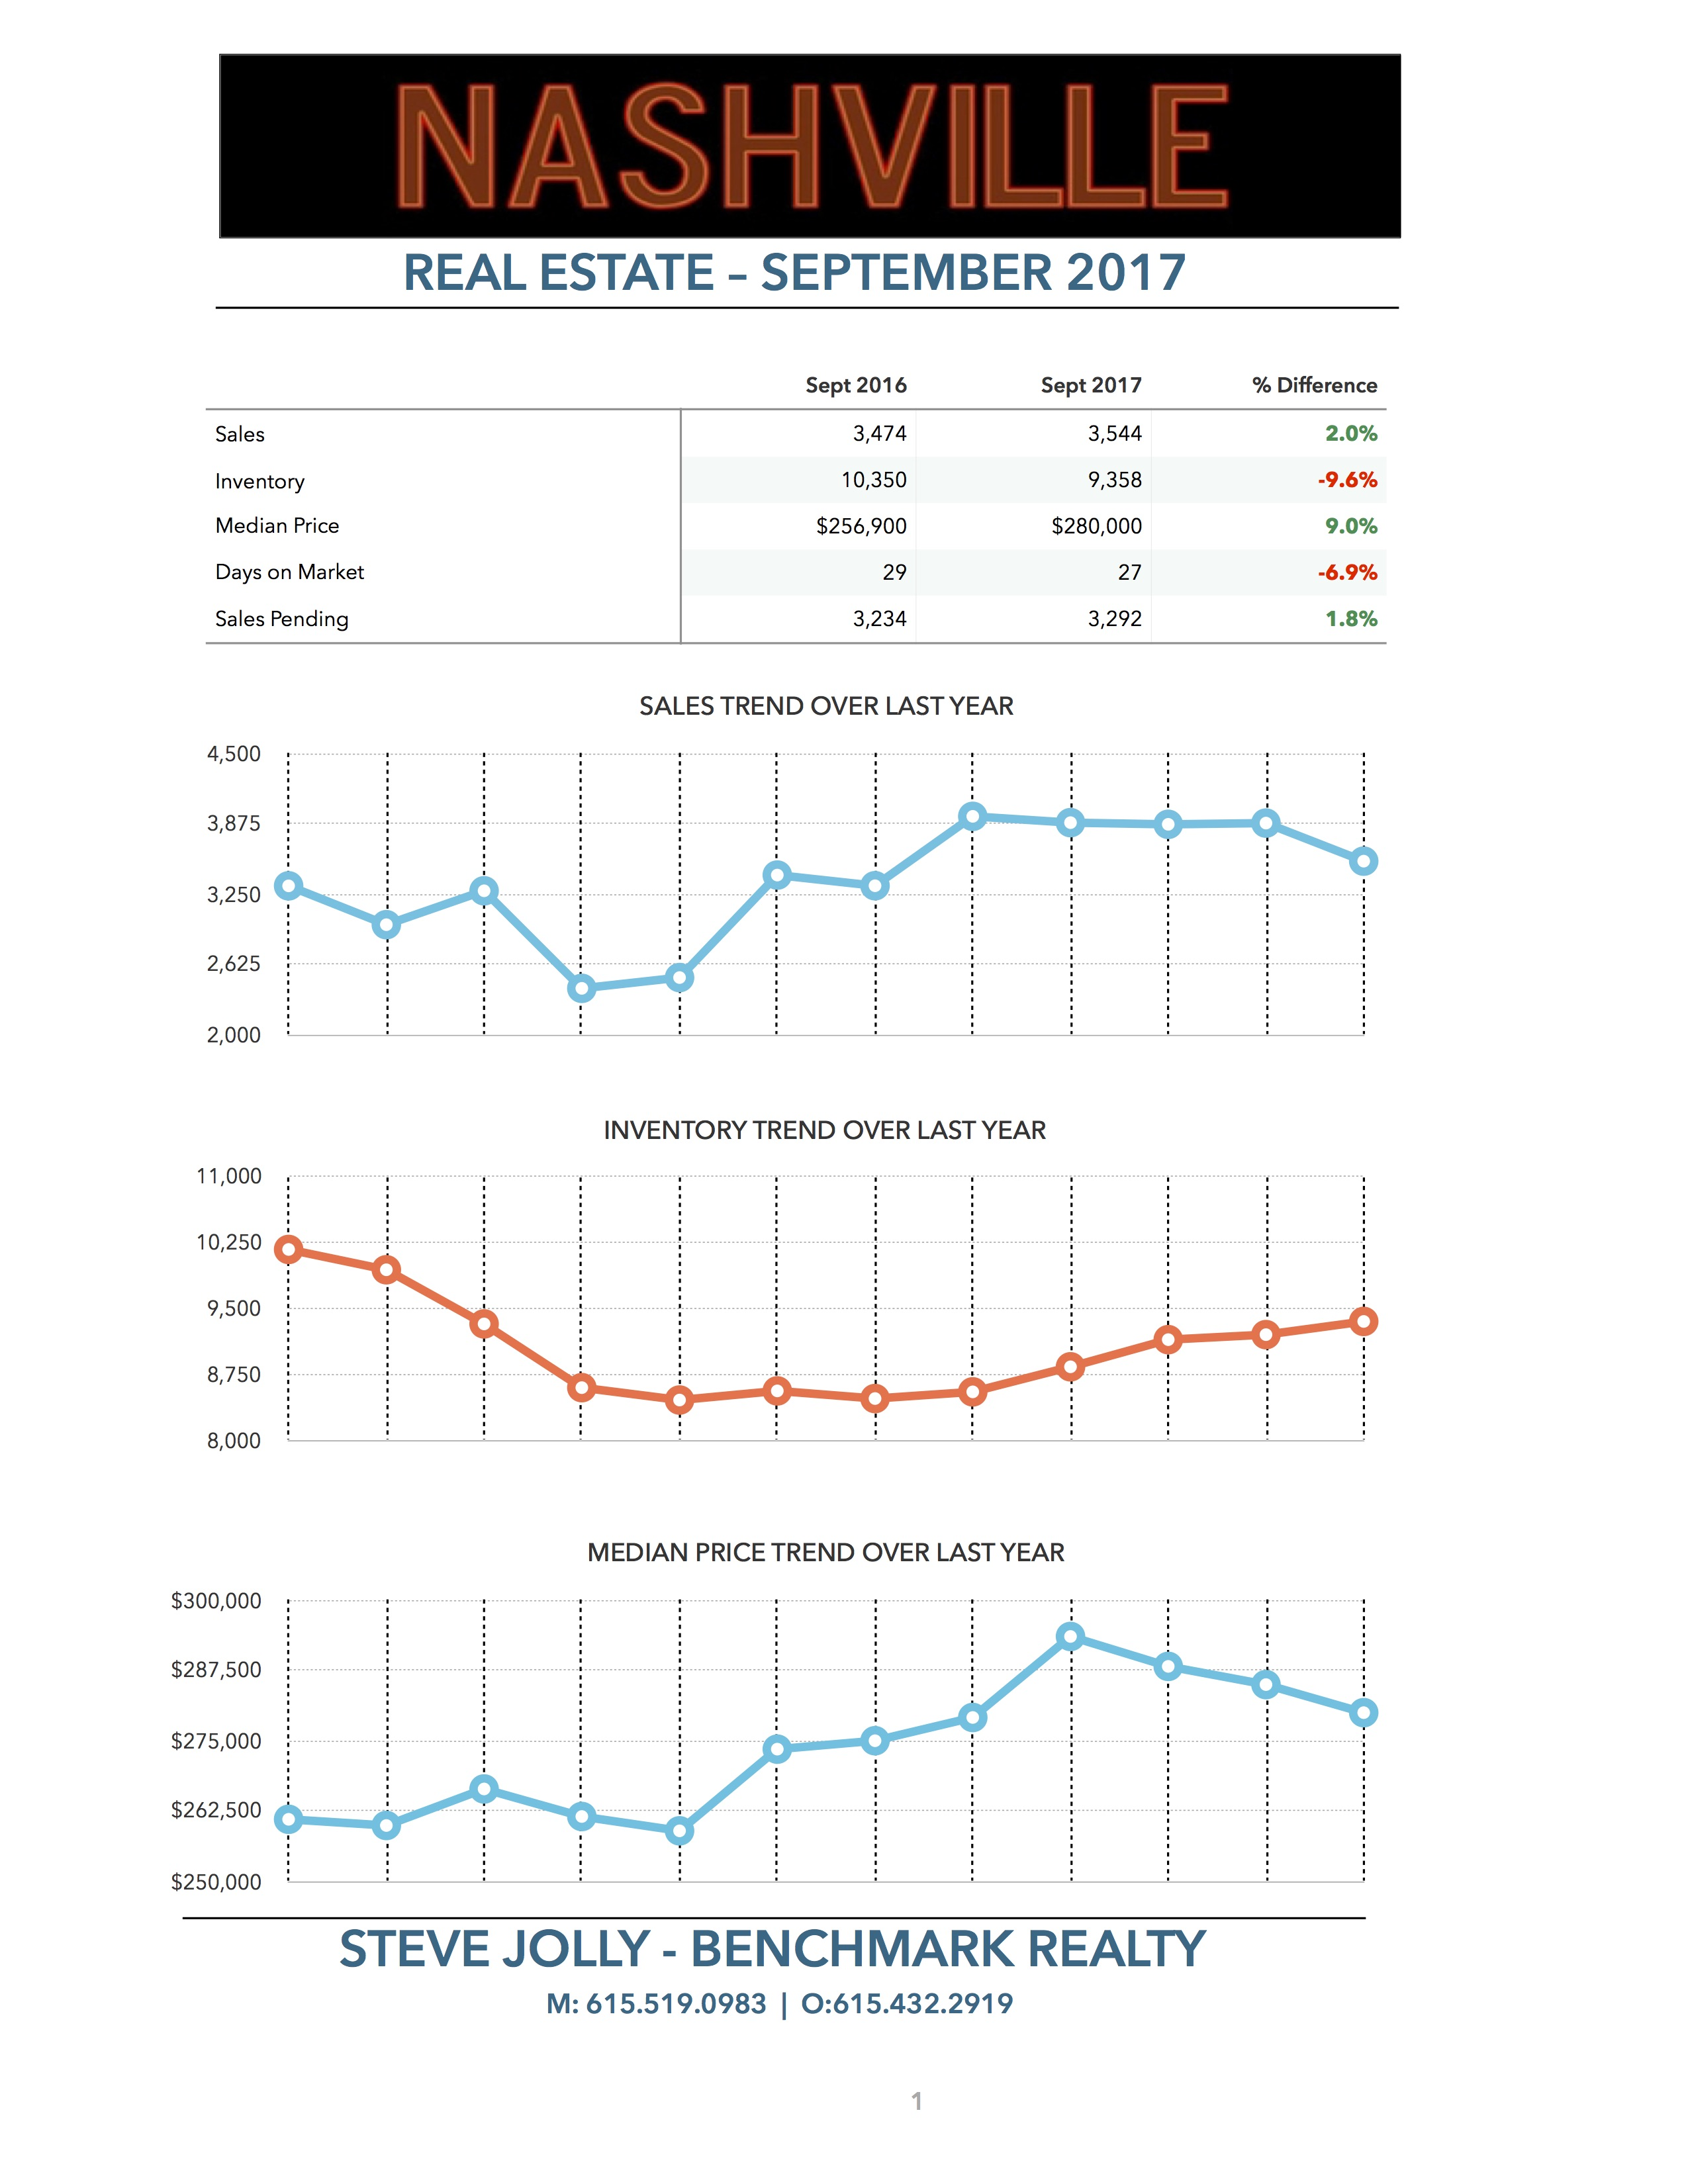 Nashville Real Estate Trends - Sept 2017